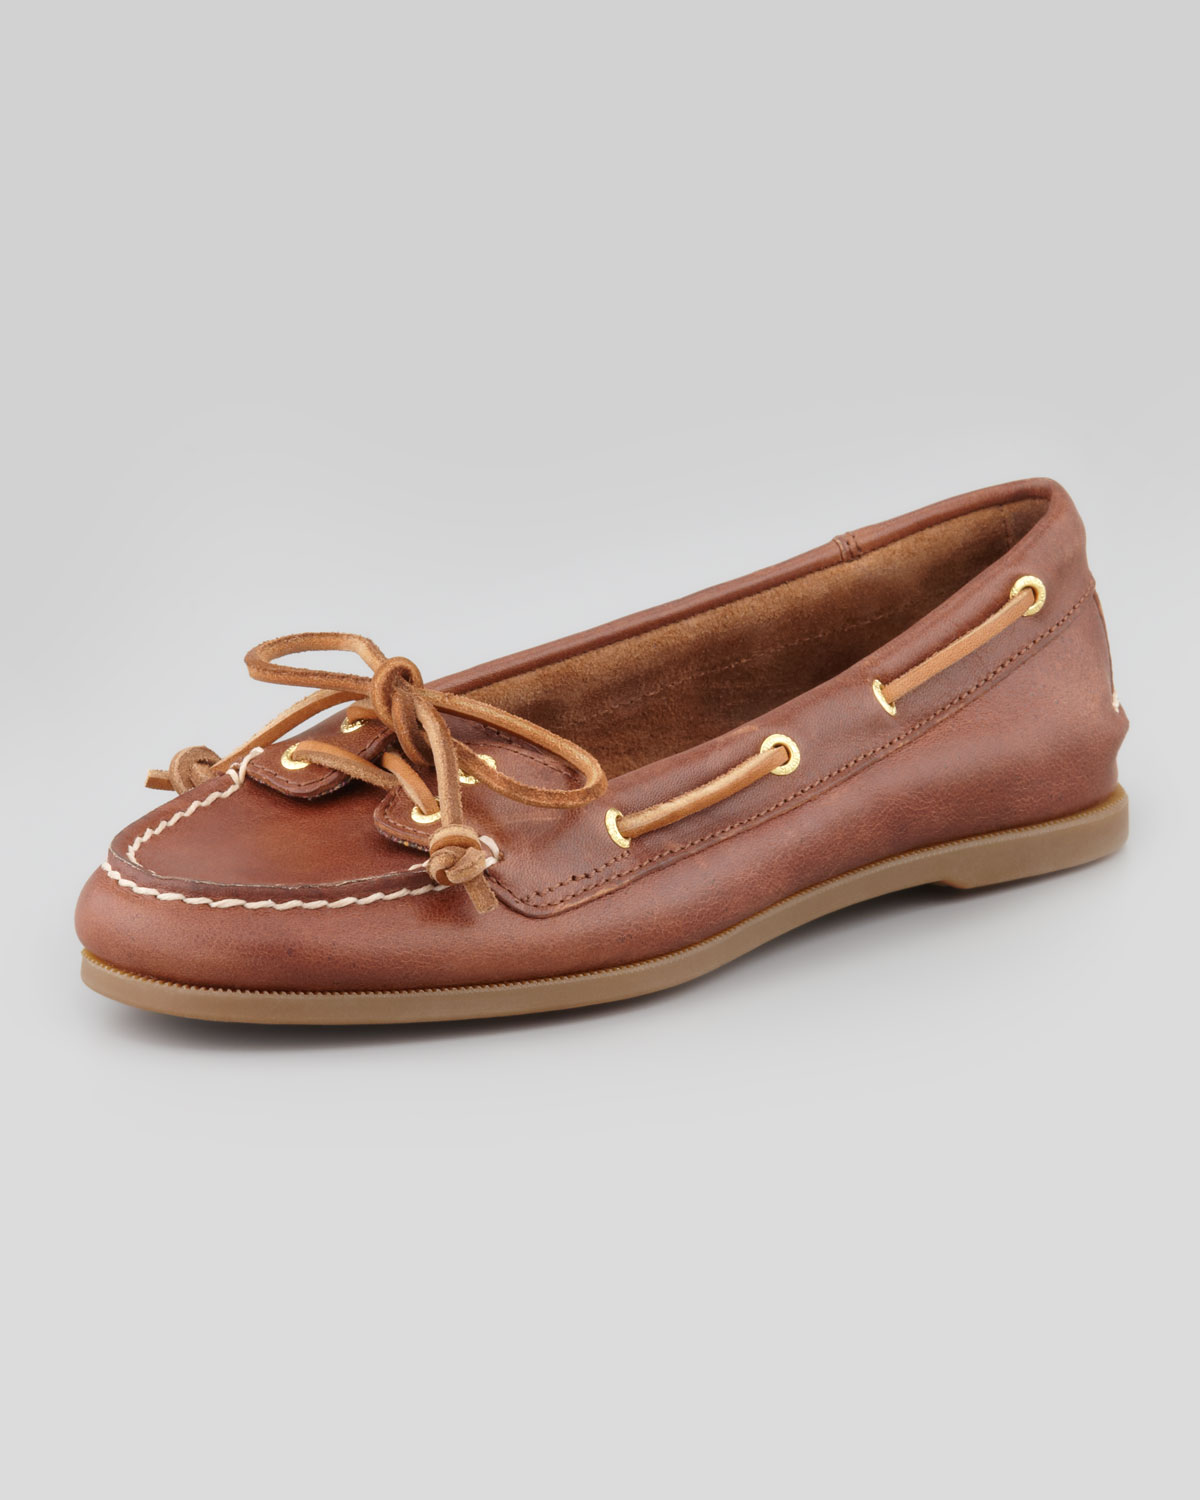 Sperry Top-Sider Audrey Classic Leather